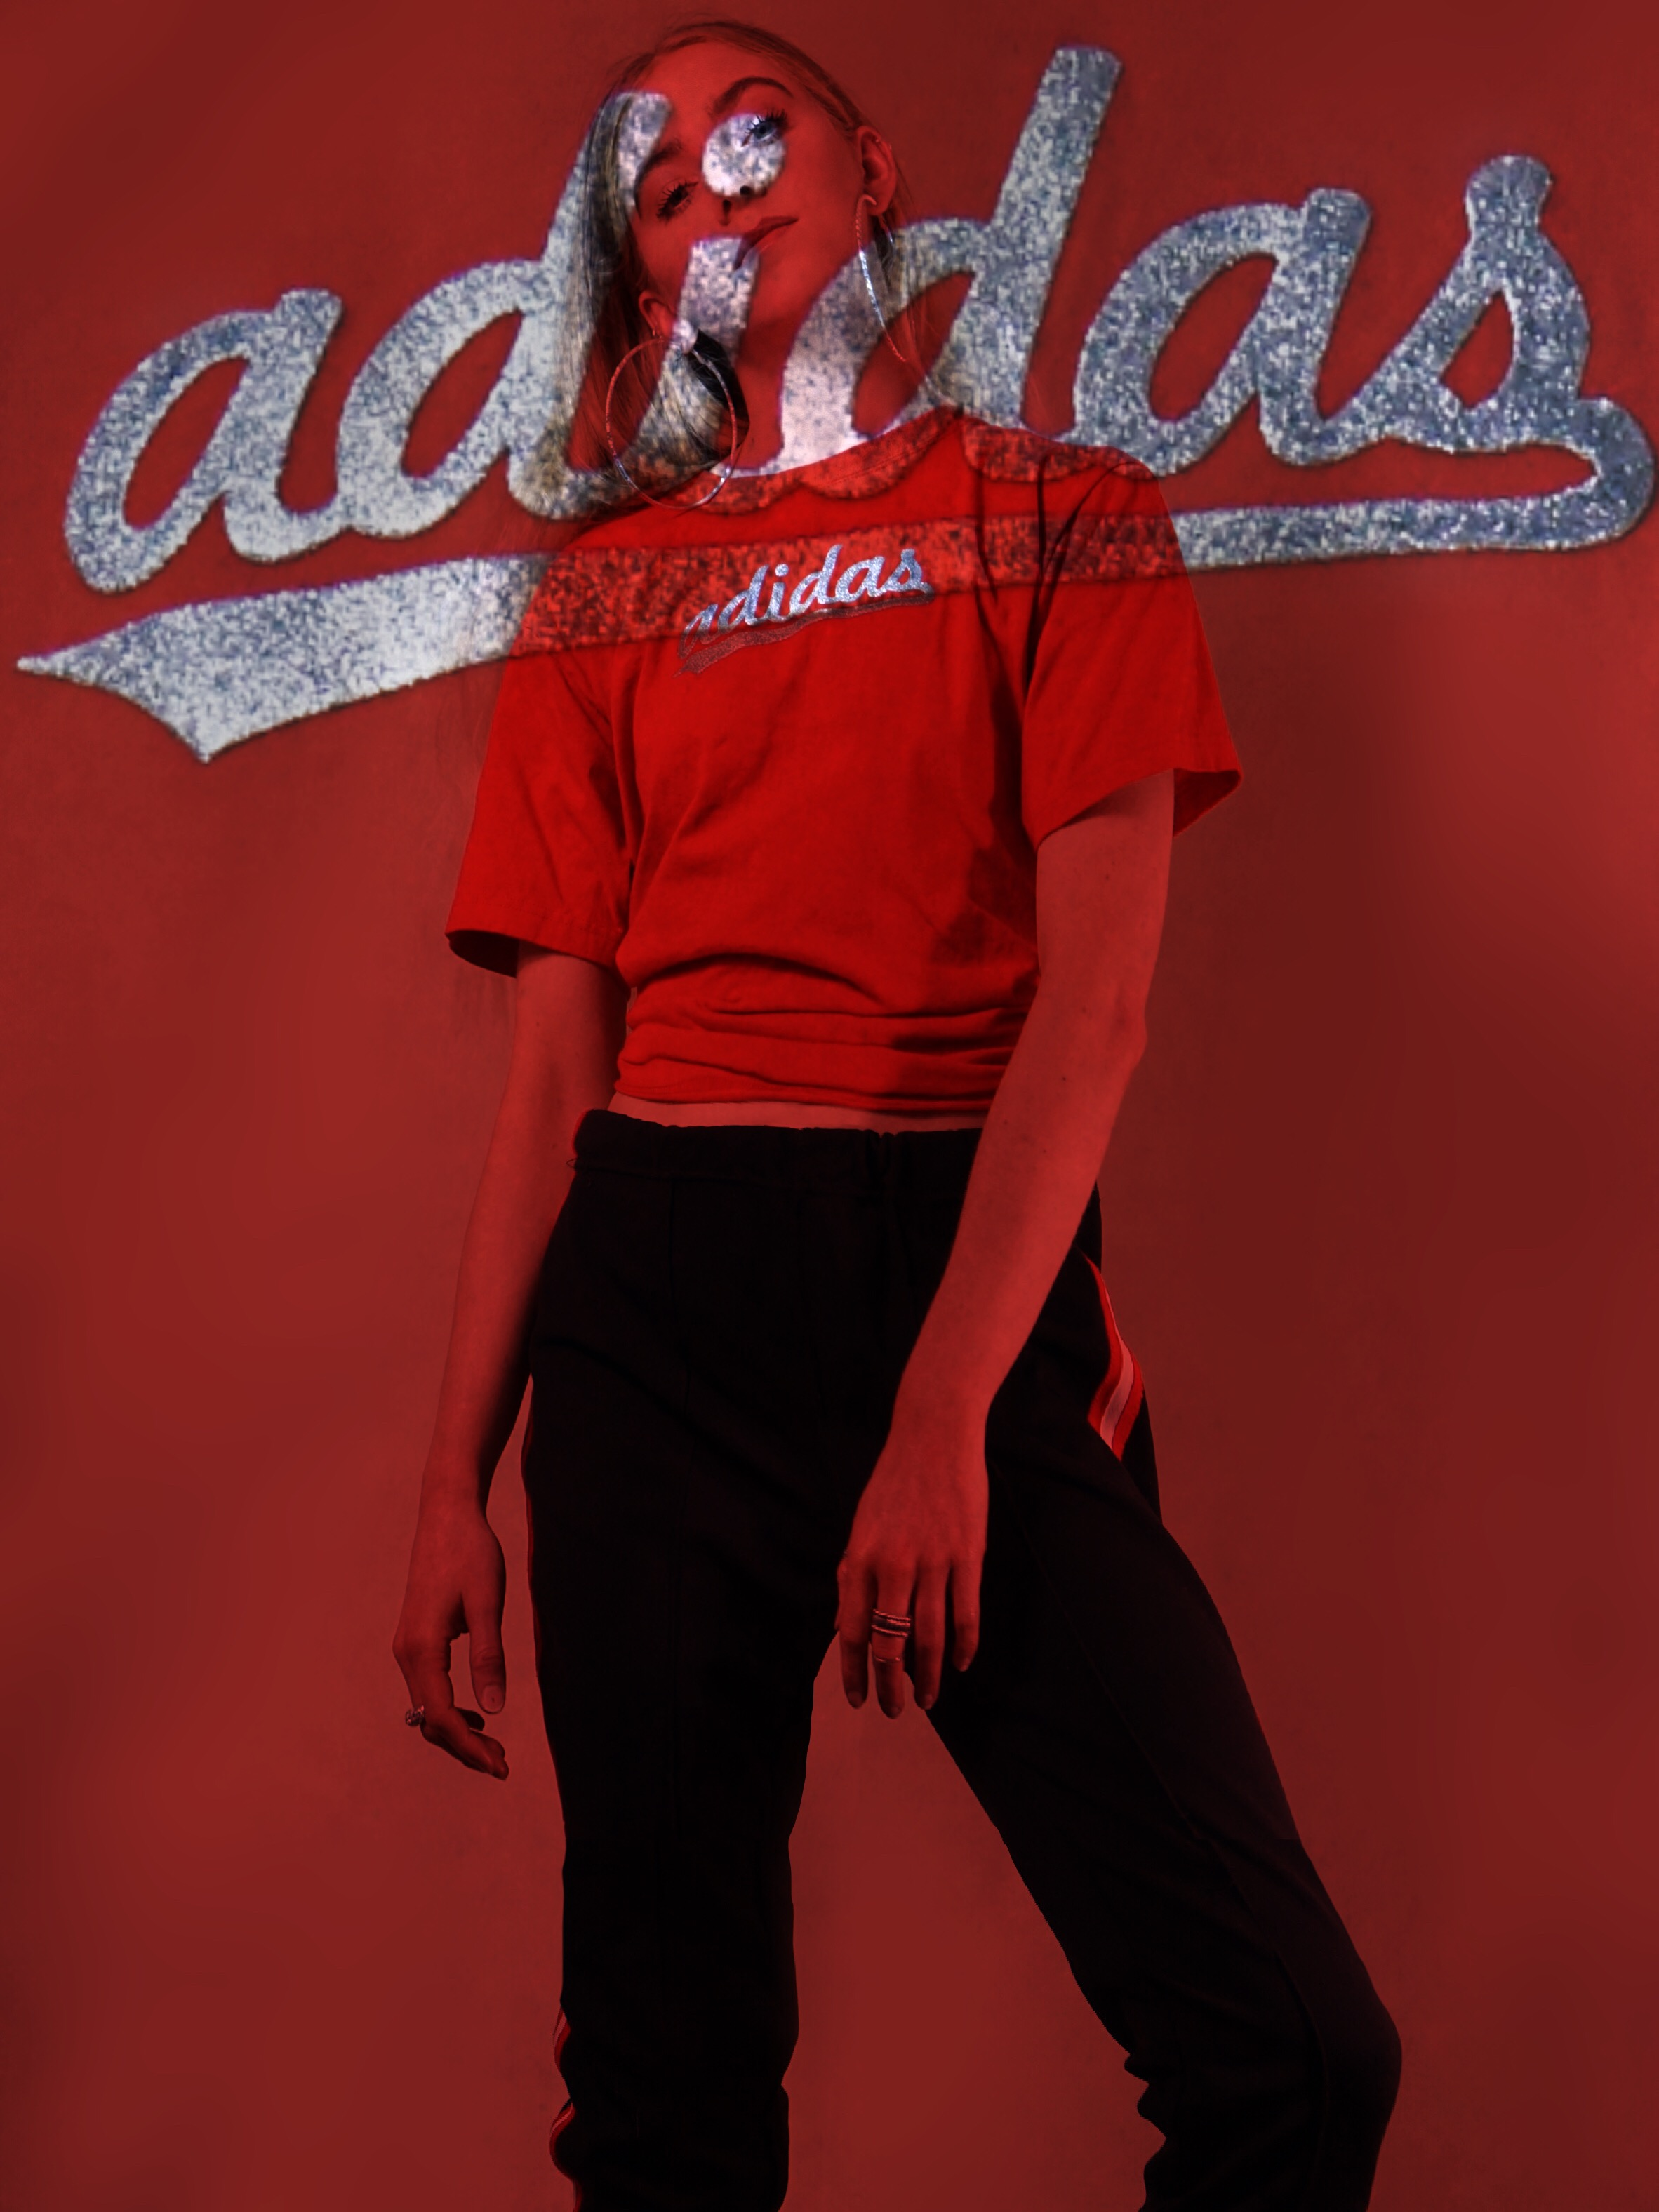 #FreeToEdit #adidas #glitter #vintage #retro #red #outfit #style #streetstyle #projection #tumblr #asos #tshirt #vintagetshirt #interesting #artsy #cool #v